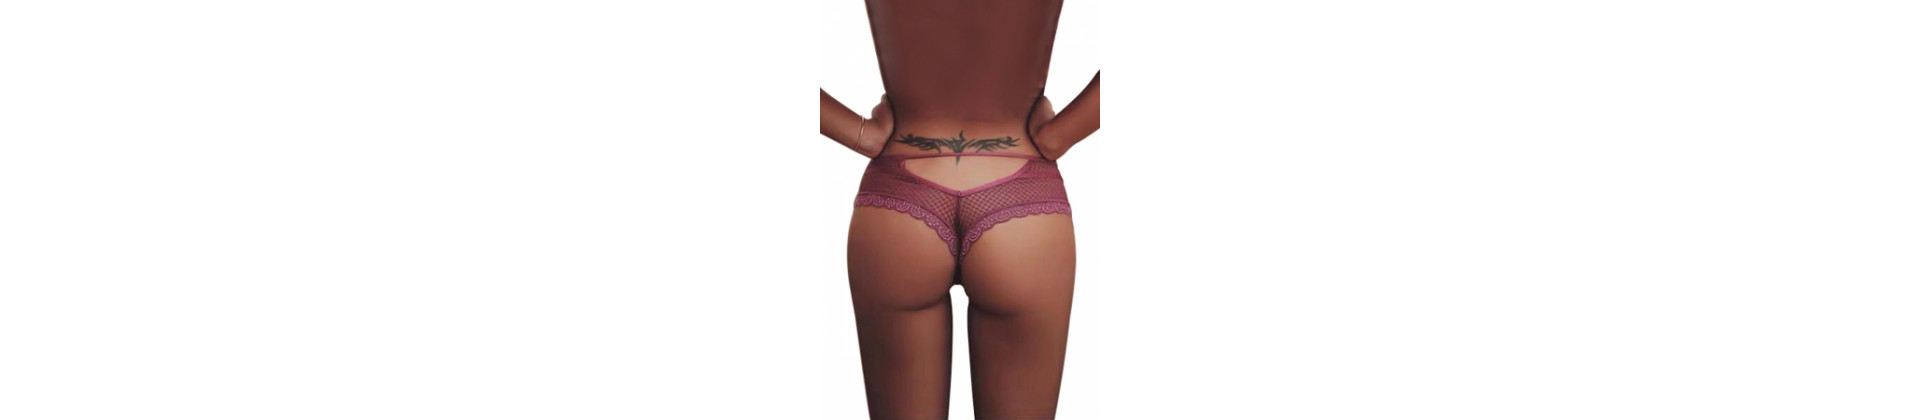 Culottes, Strings, Shorty, Pantys, Slips, Tangas, Bresiliens